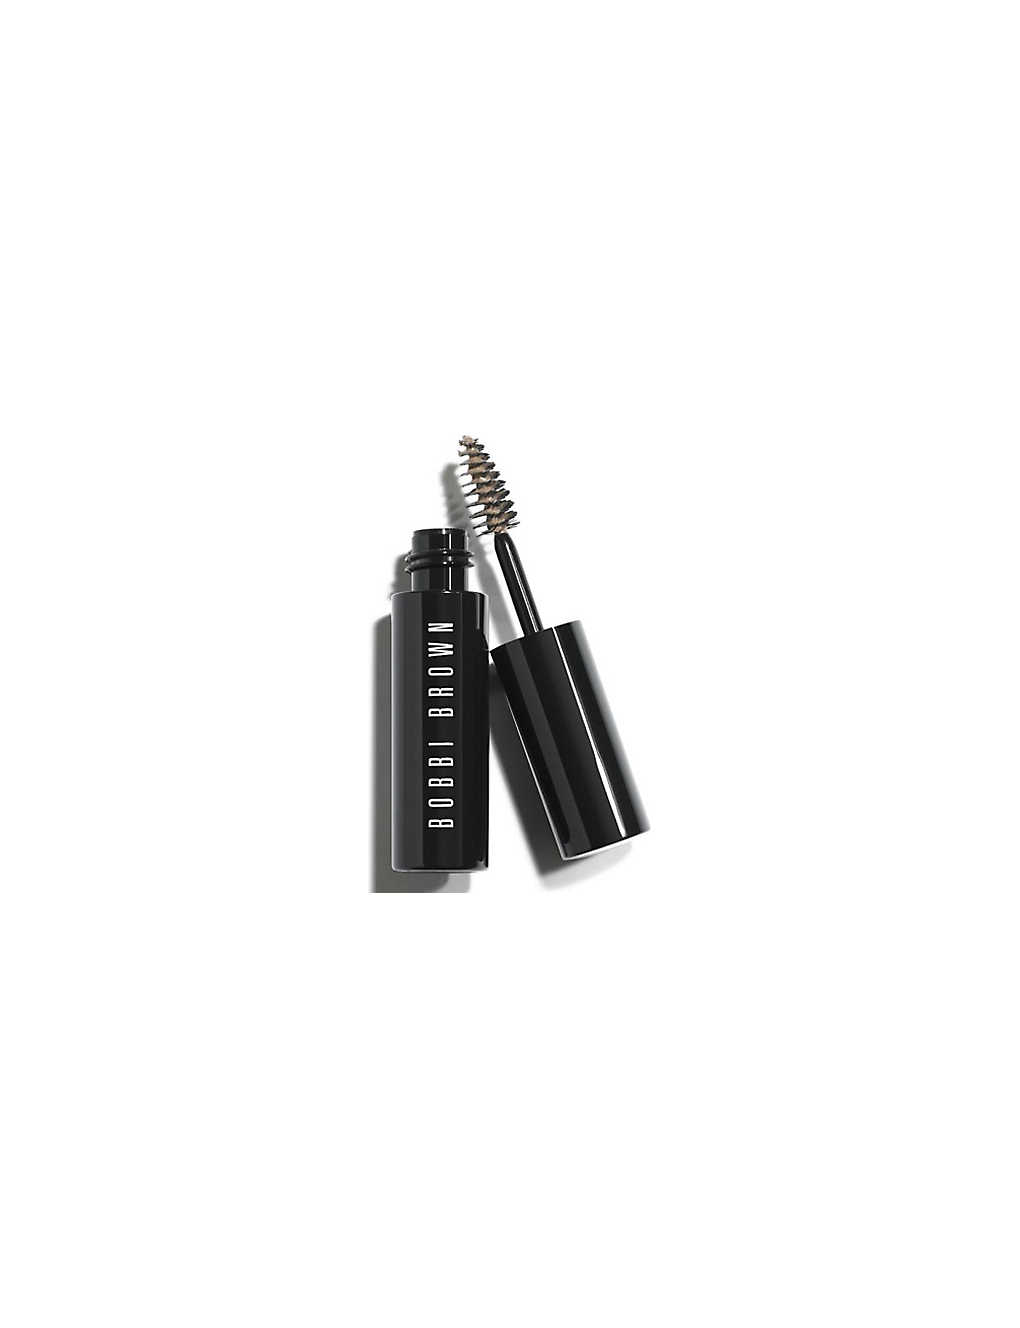 BOBBI BROWN: Natural Brow Shaper & Hair Touch Up